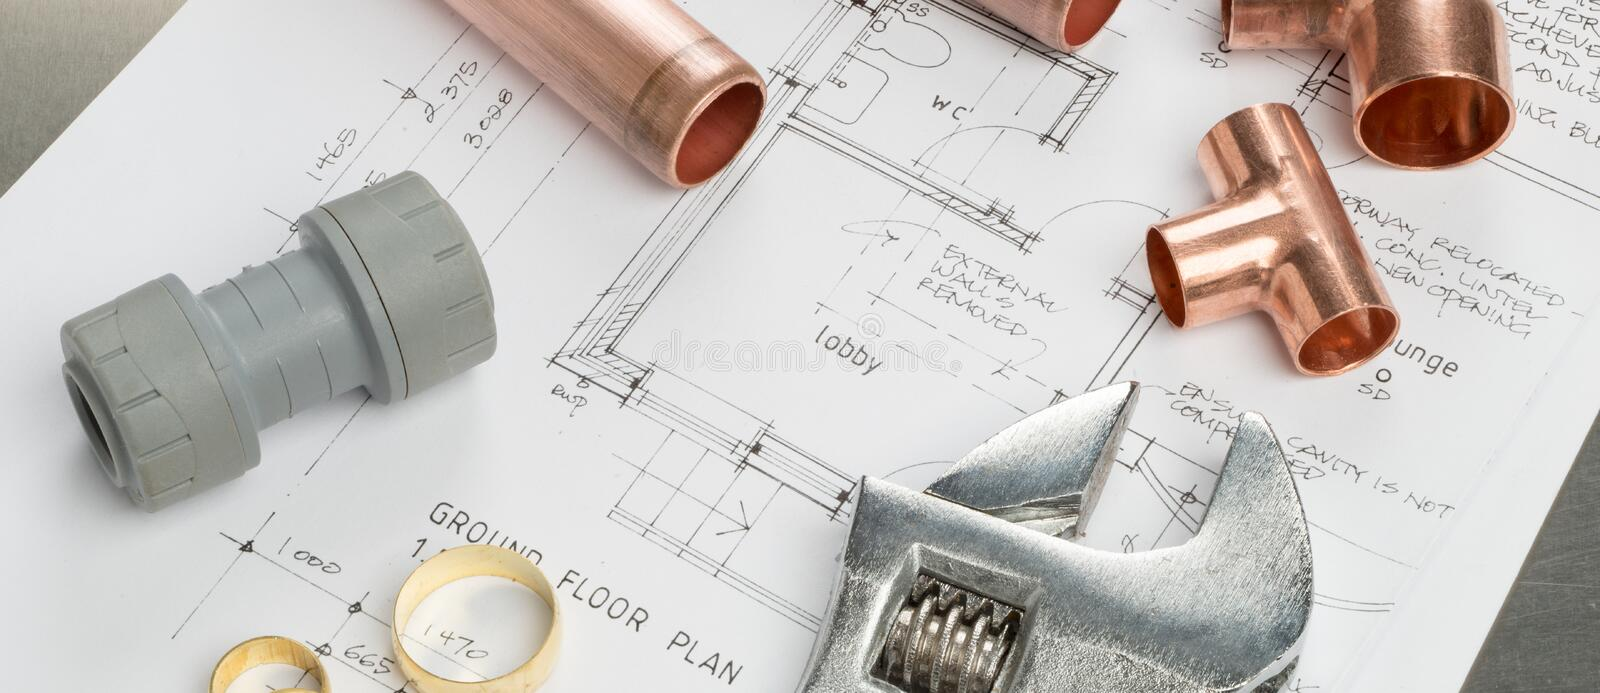 Various Plumbers Tools and Plumbing Materials on Architectural P stock photography